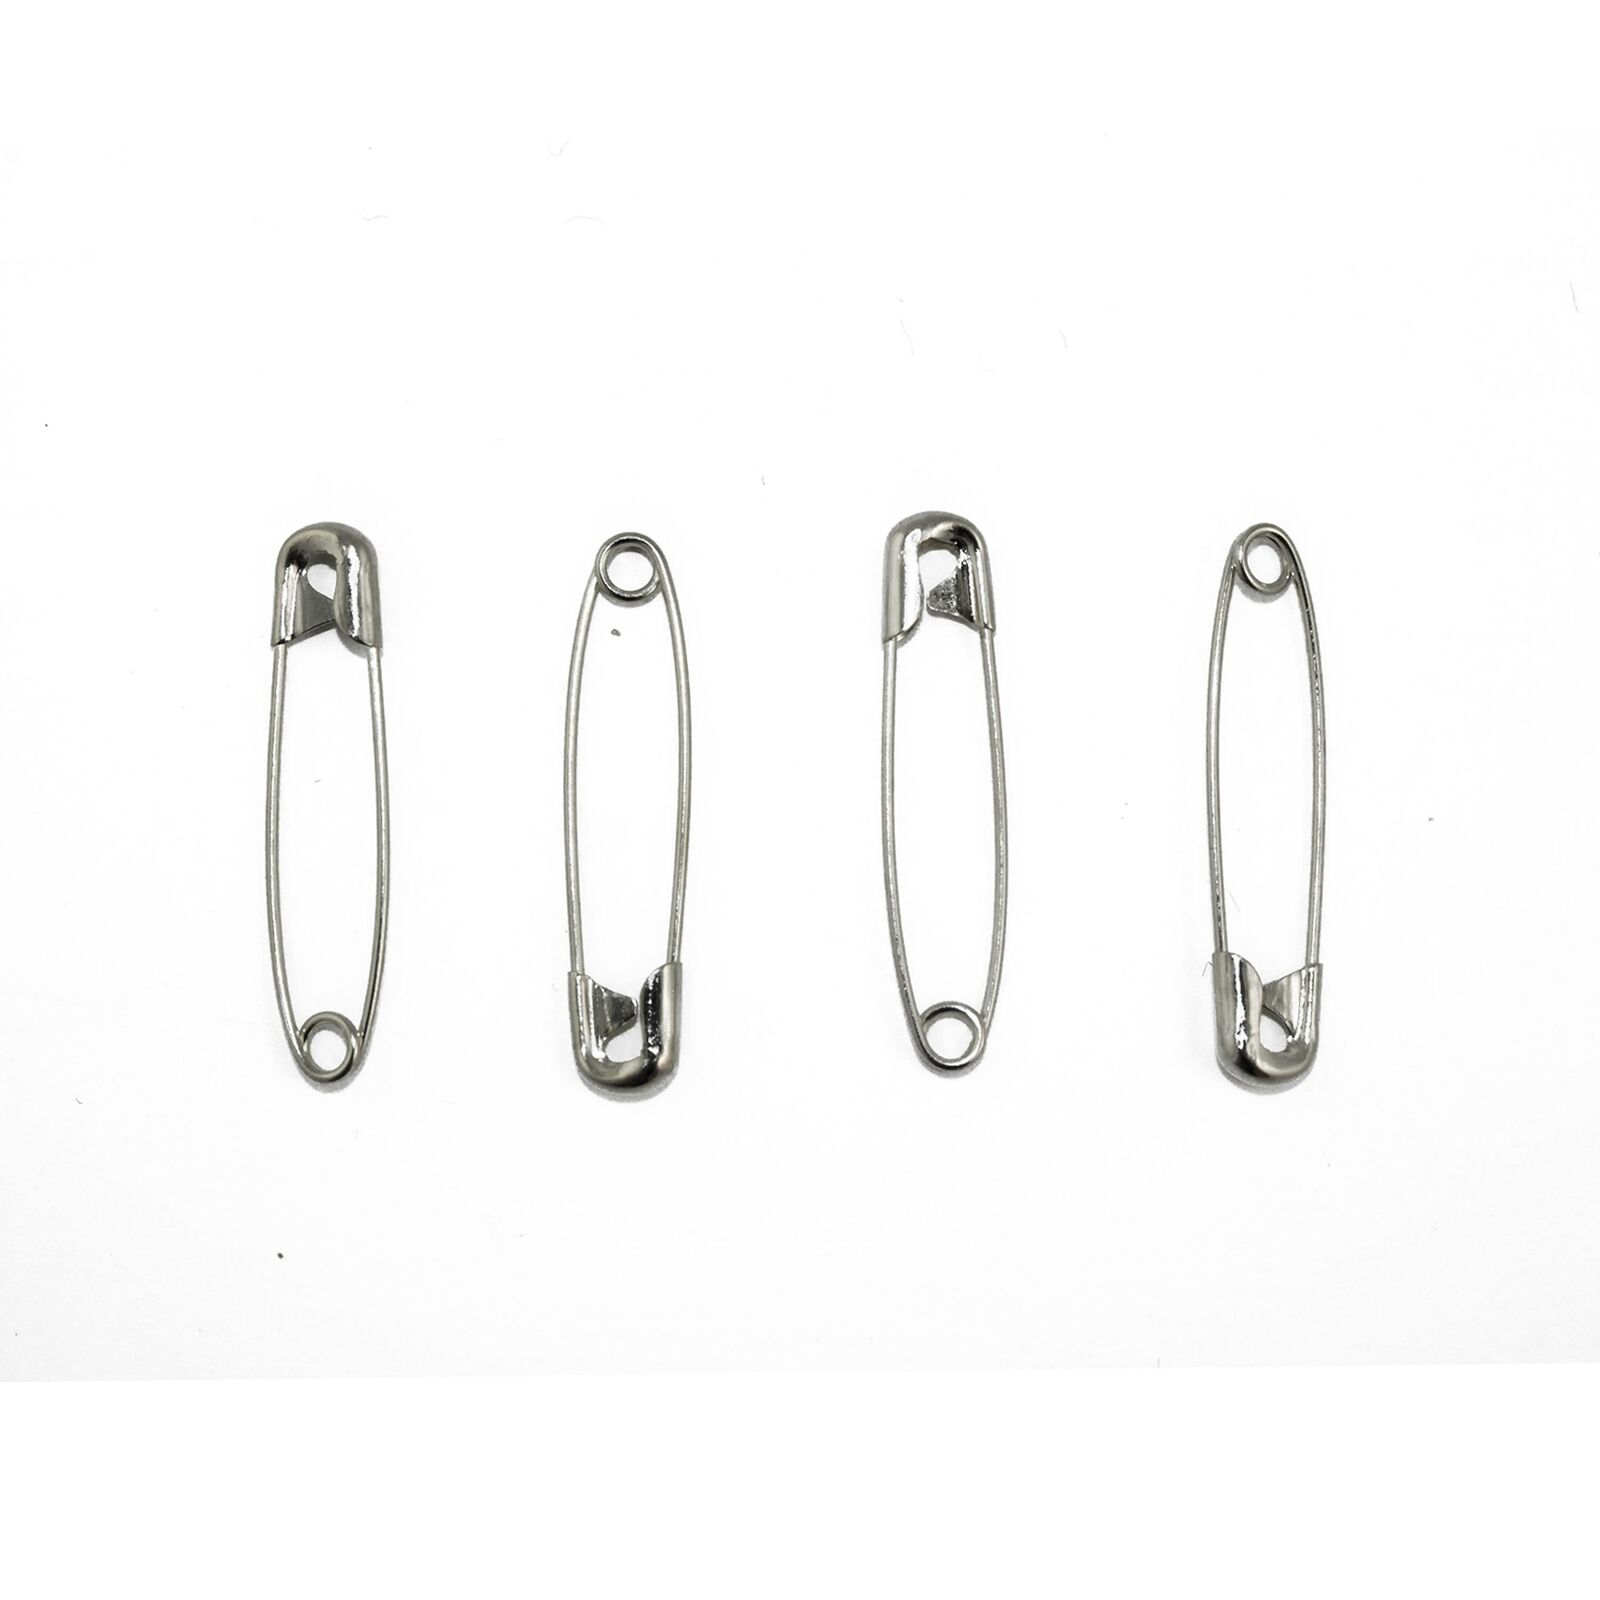 2c7c9ce473f Silver Safety Pins Size 2 - 1.5 Inch 144 Pieces Premium Quality 1 of 4FREE  Shipping ...